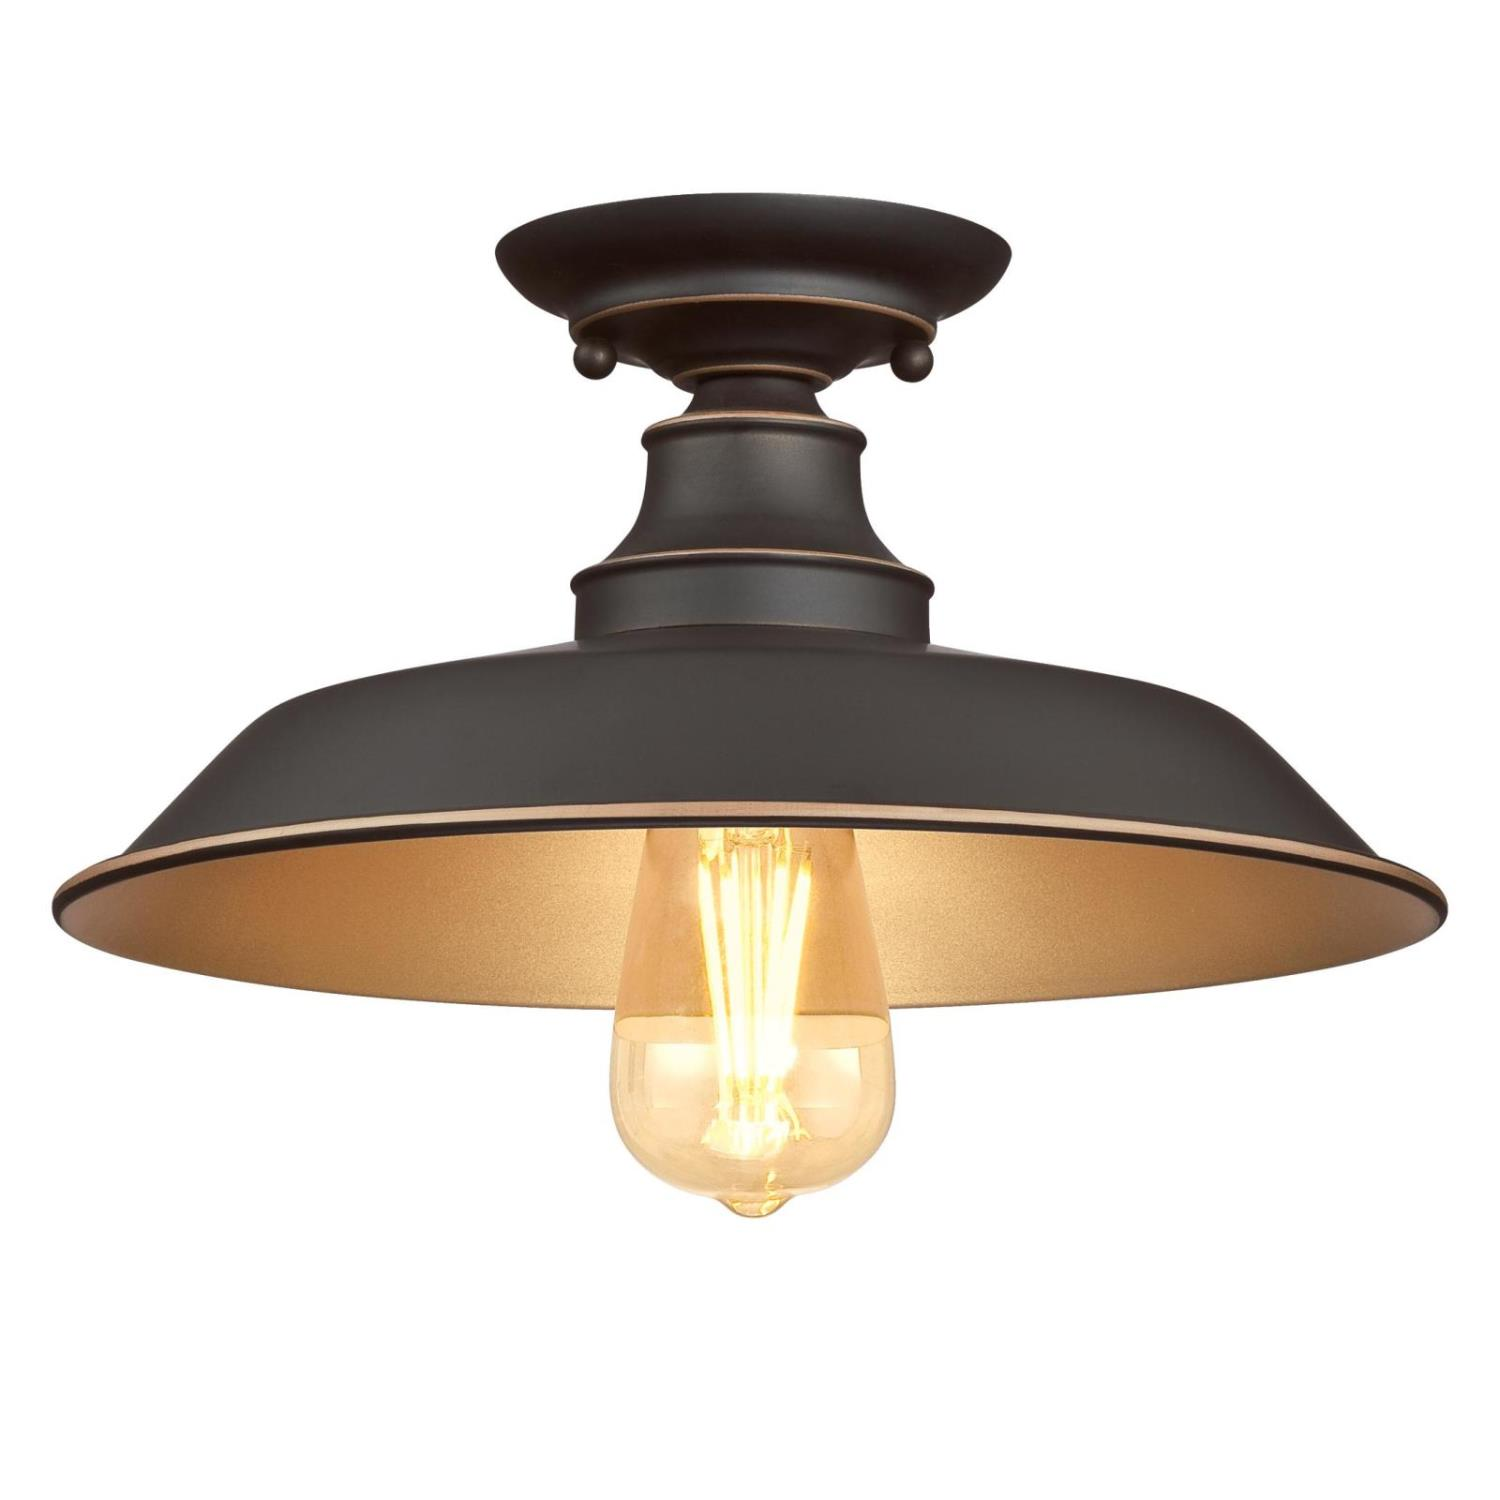 12 in. 1 Light Semi-Flush Oil Rubbed Bronze Finish with Highlights